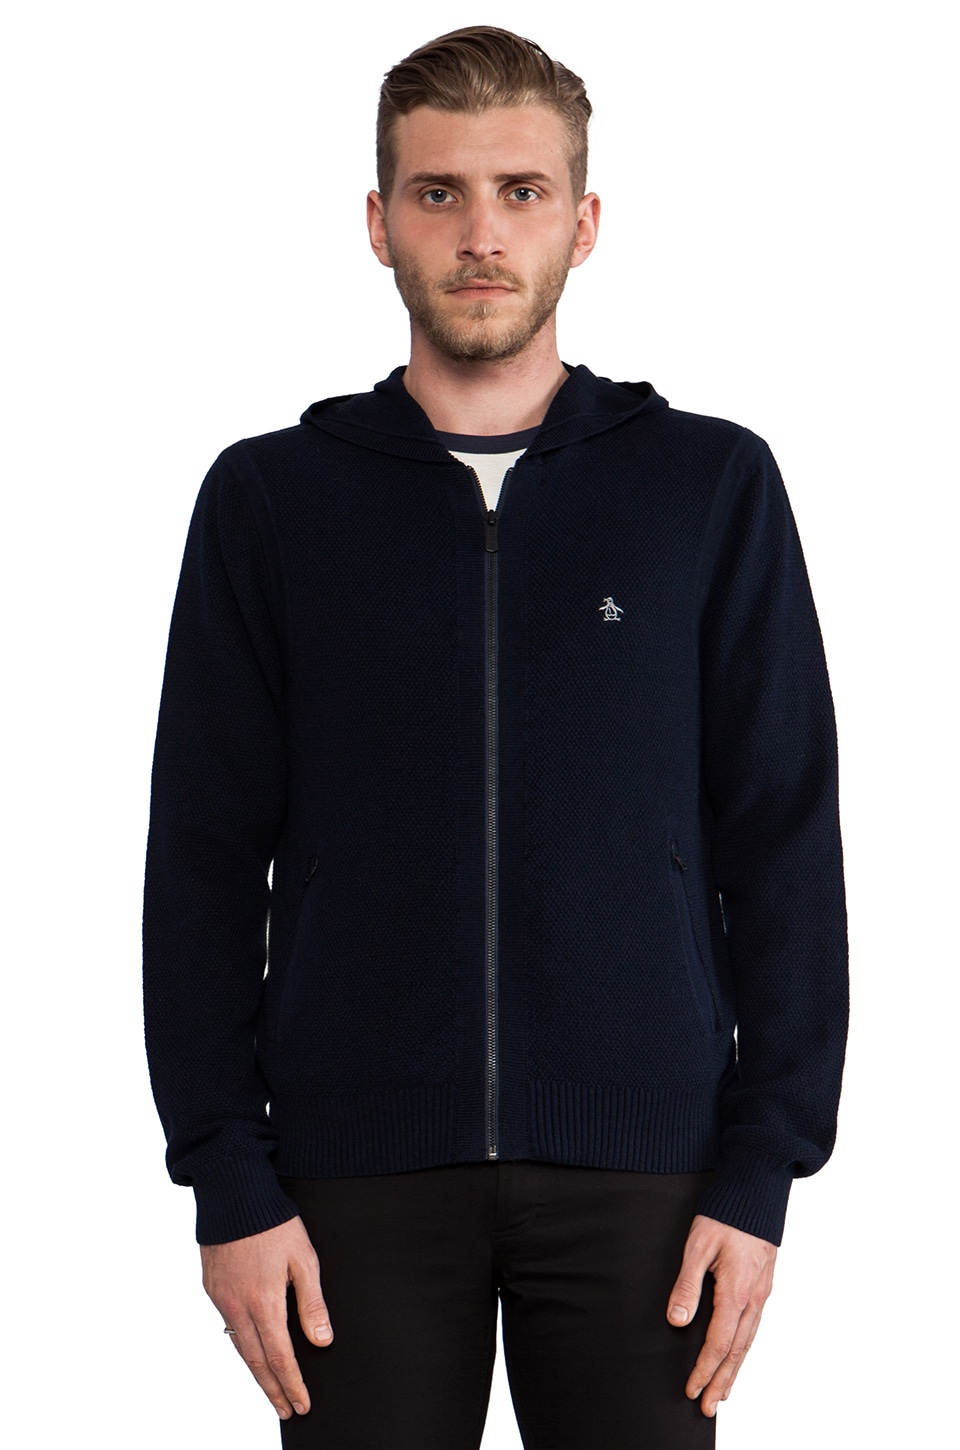 Penguin 2-Way Zip Hoodie in Dark Sapphire